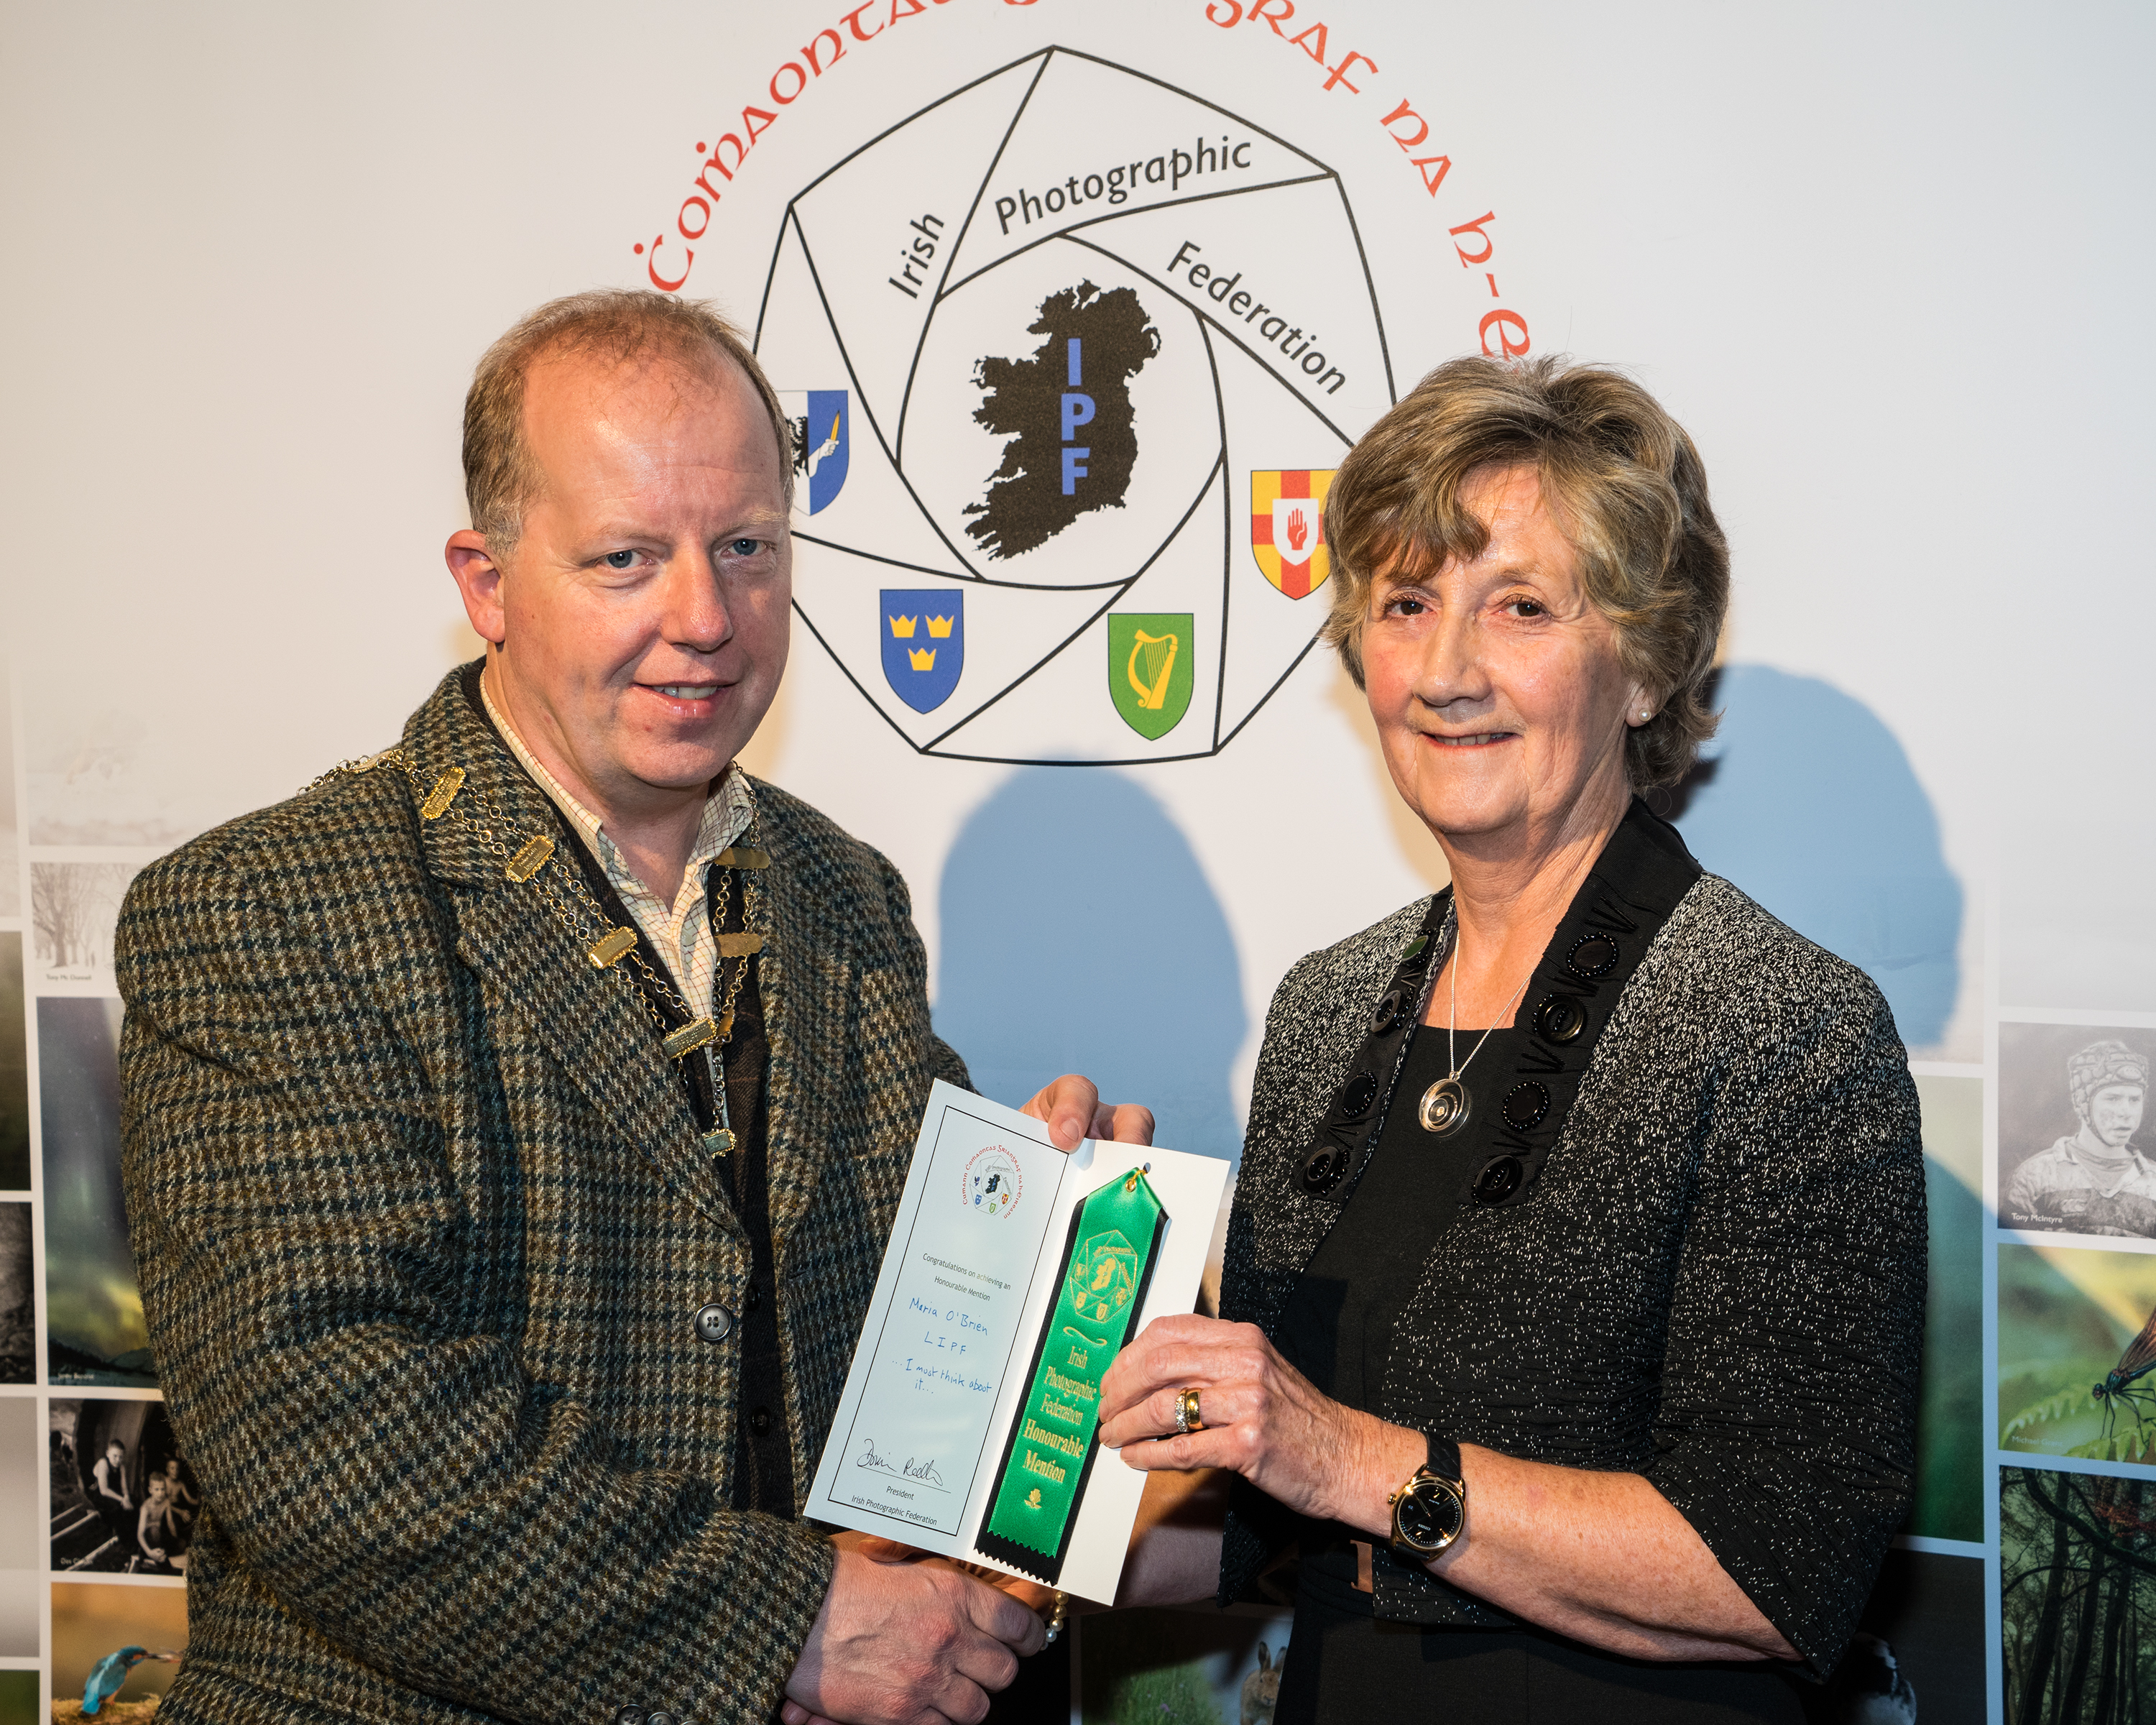 Dominic Reddin, FIPF presenting Maria O'Brien, LIPF with an Honourable Mention Certificate